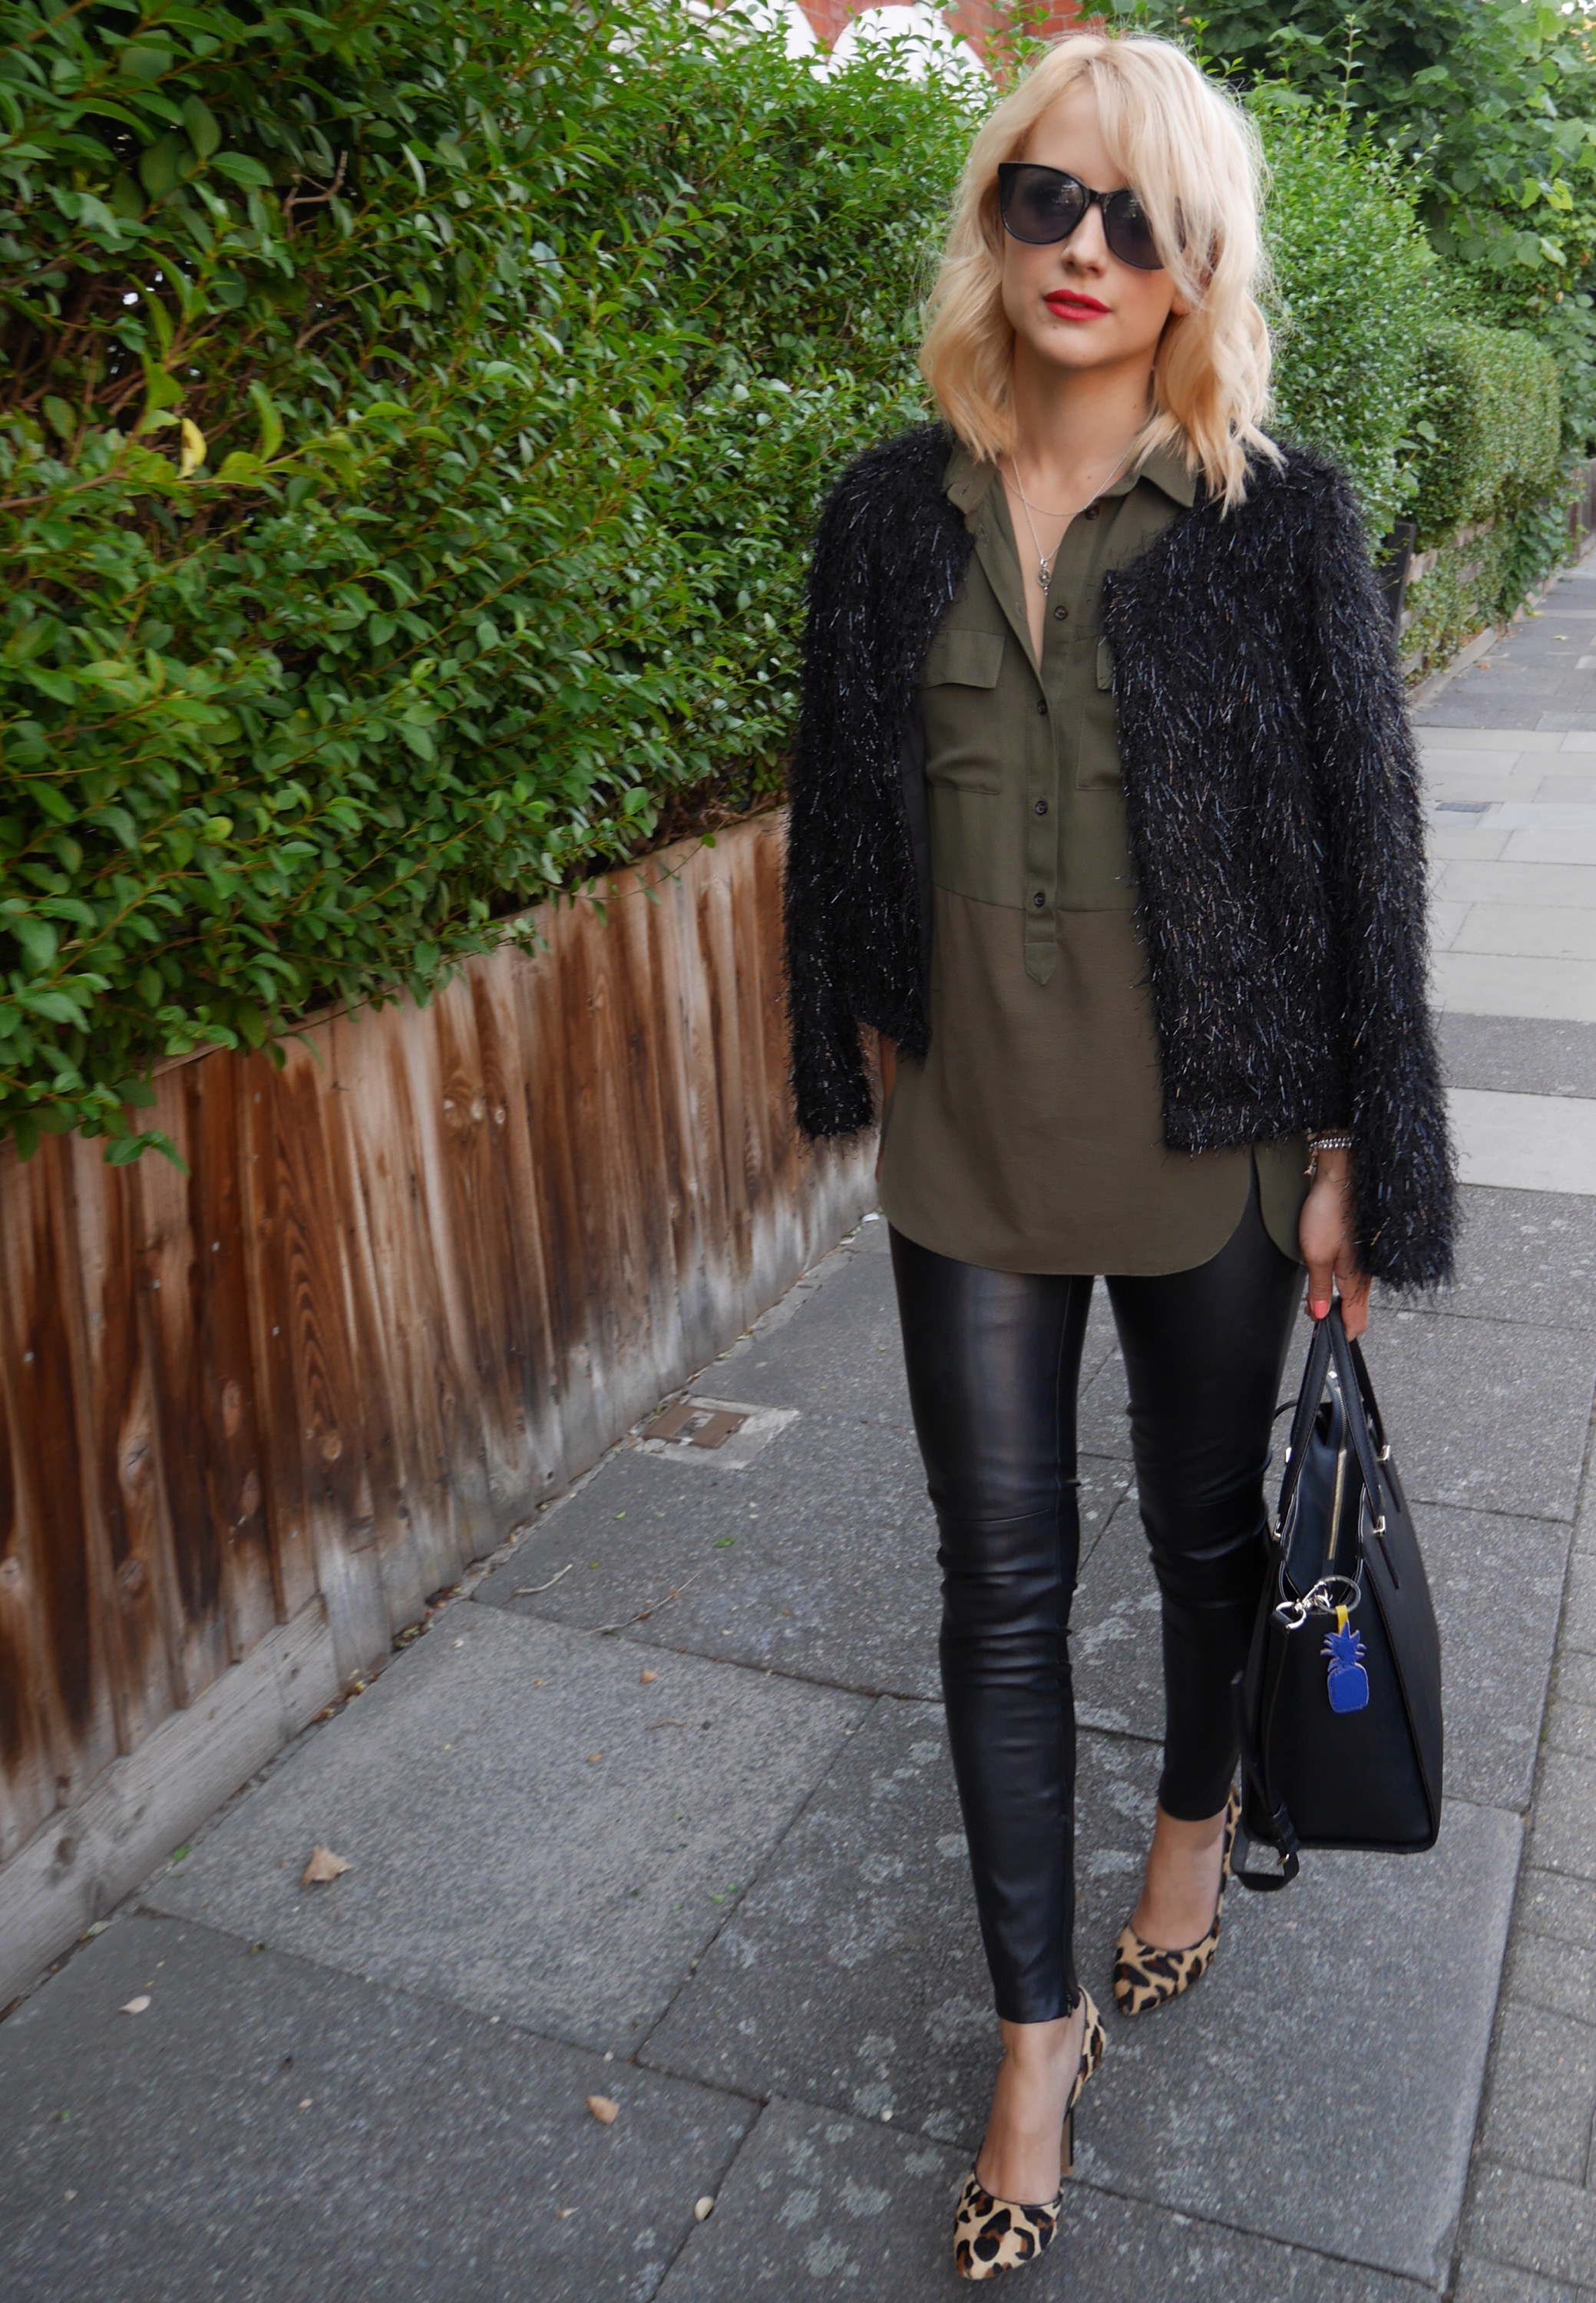 Outfit of the day | khaki and black evening look - coco mama style